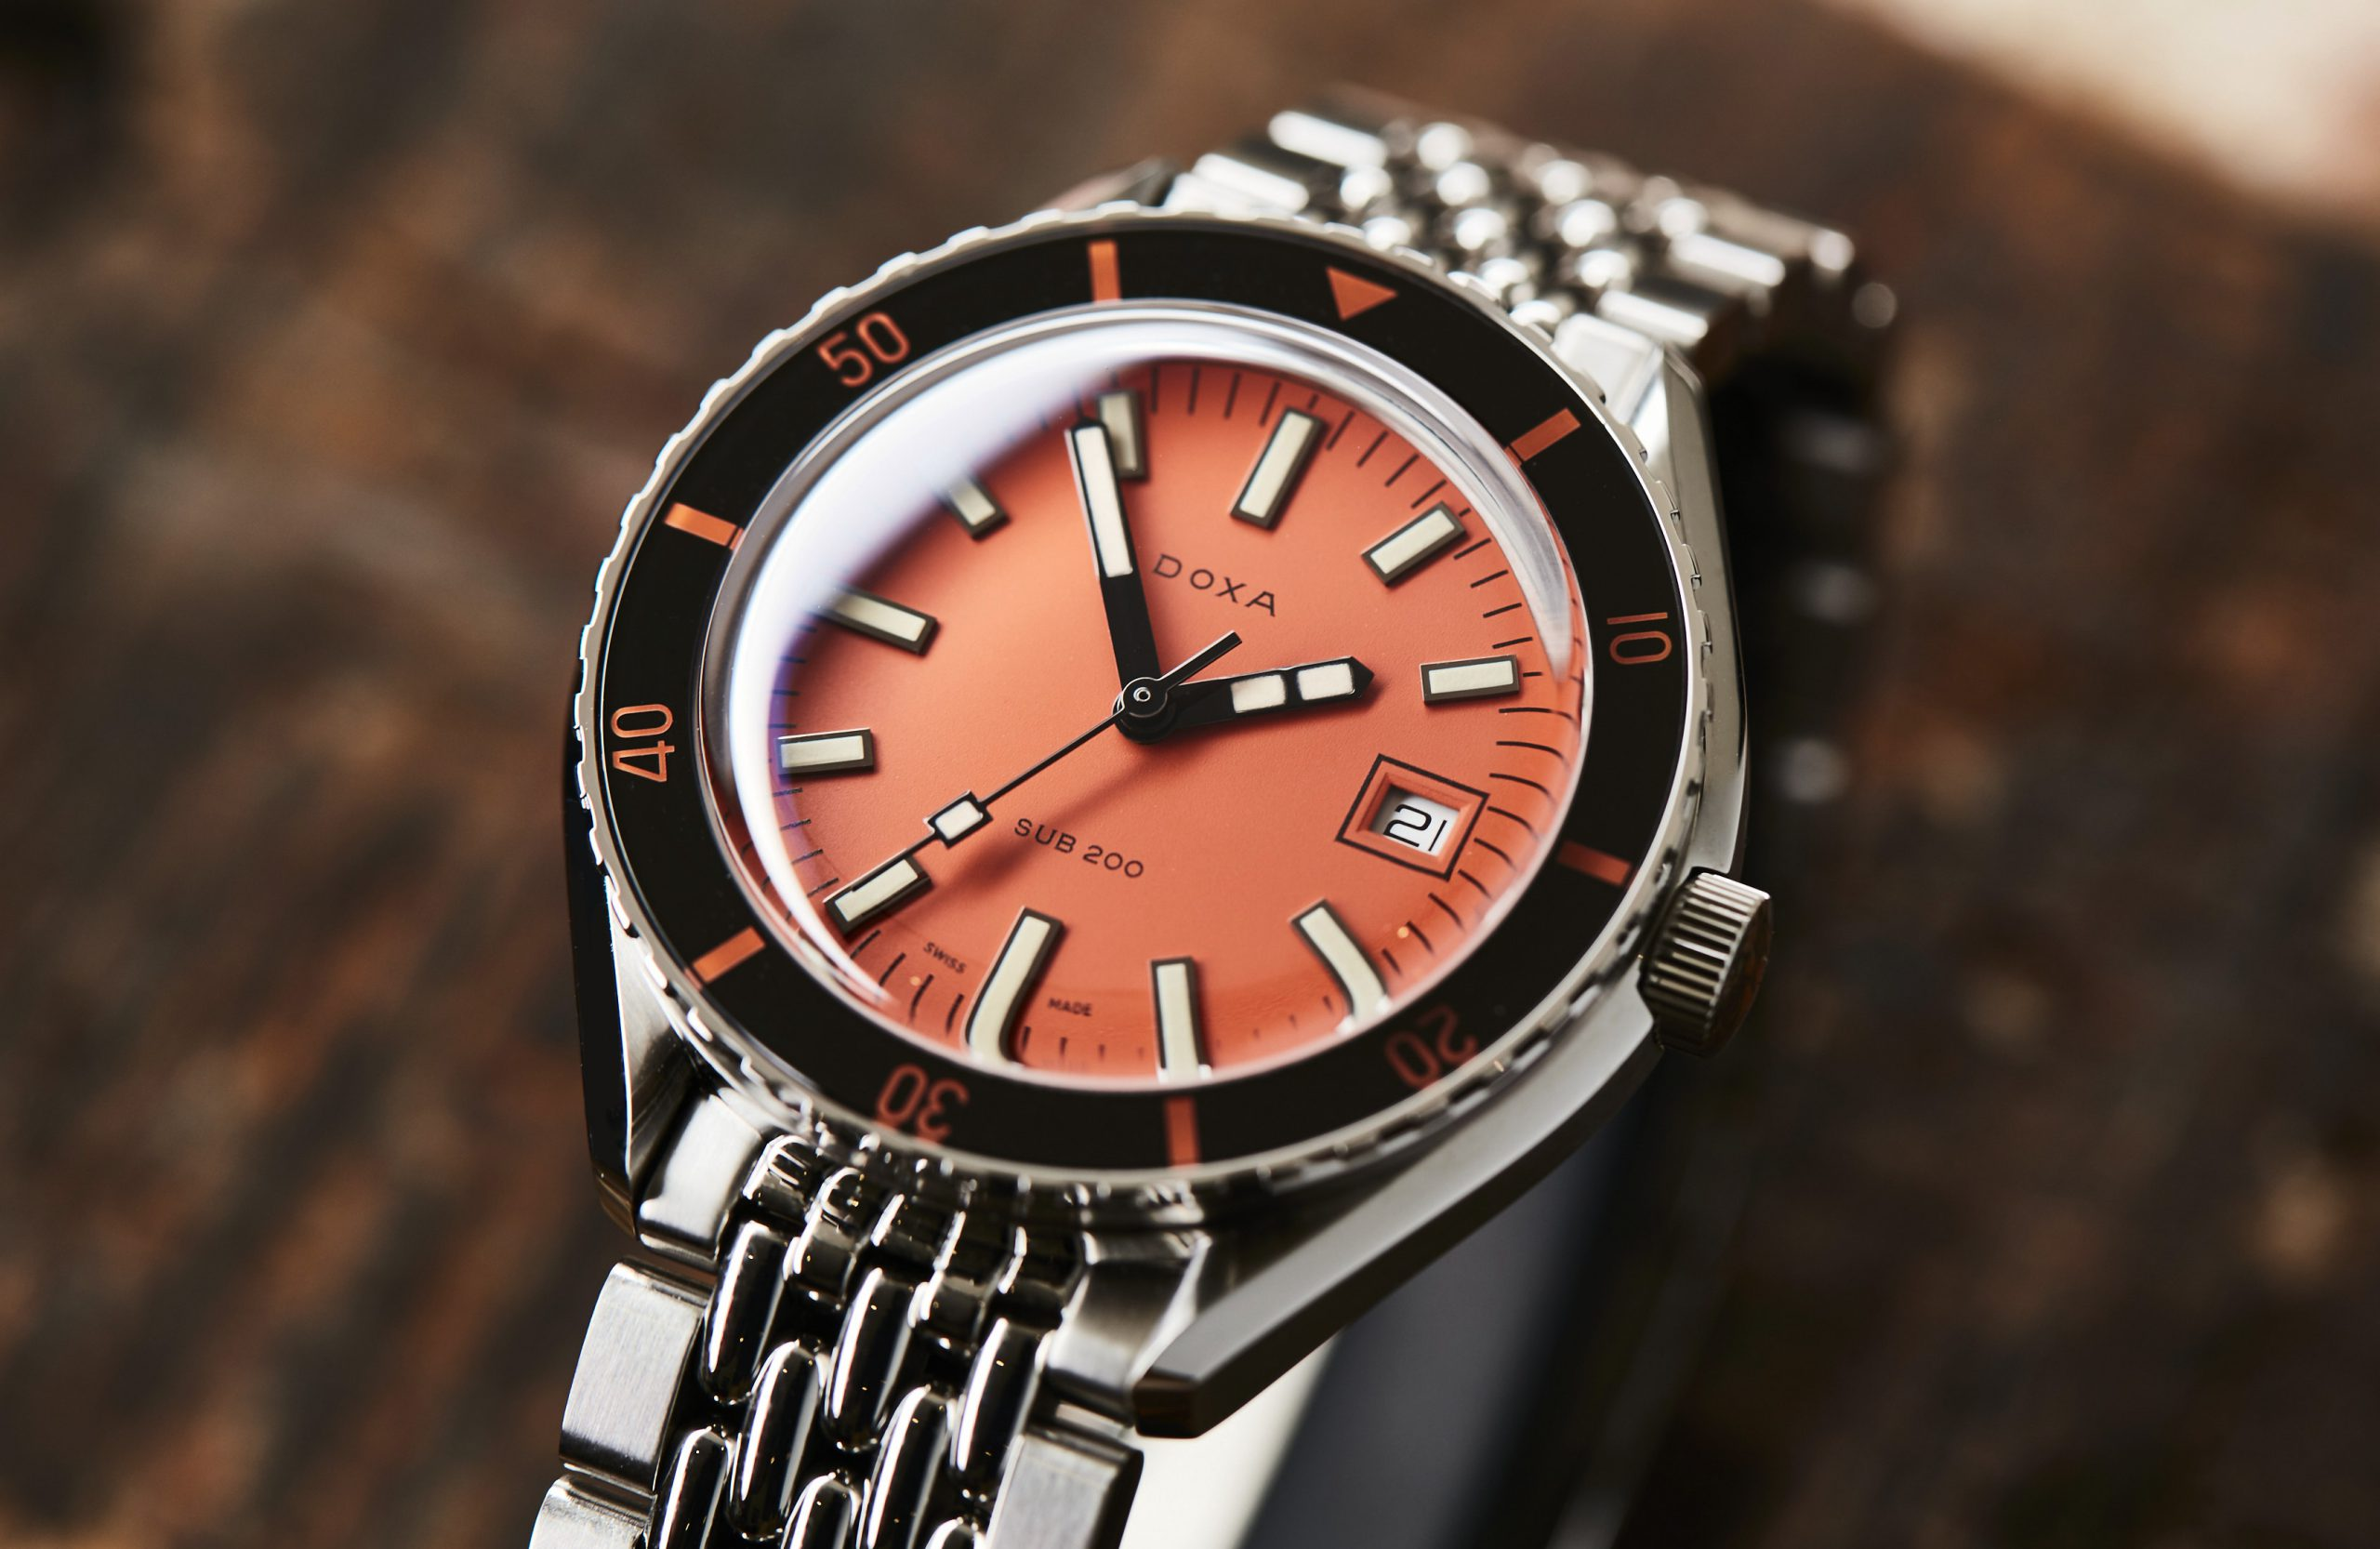 Bid on this watch and help Australians fight our worst ever bushfire season